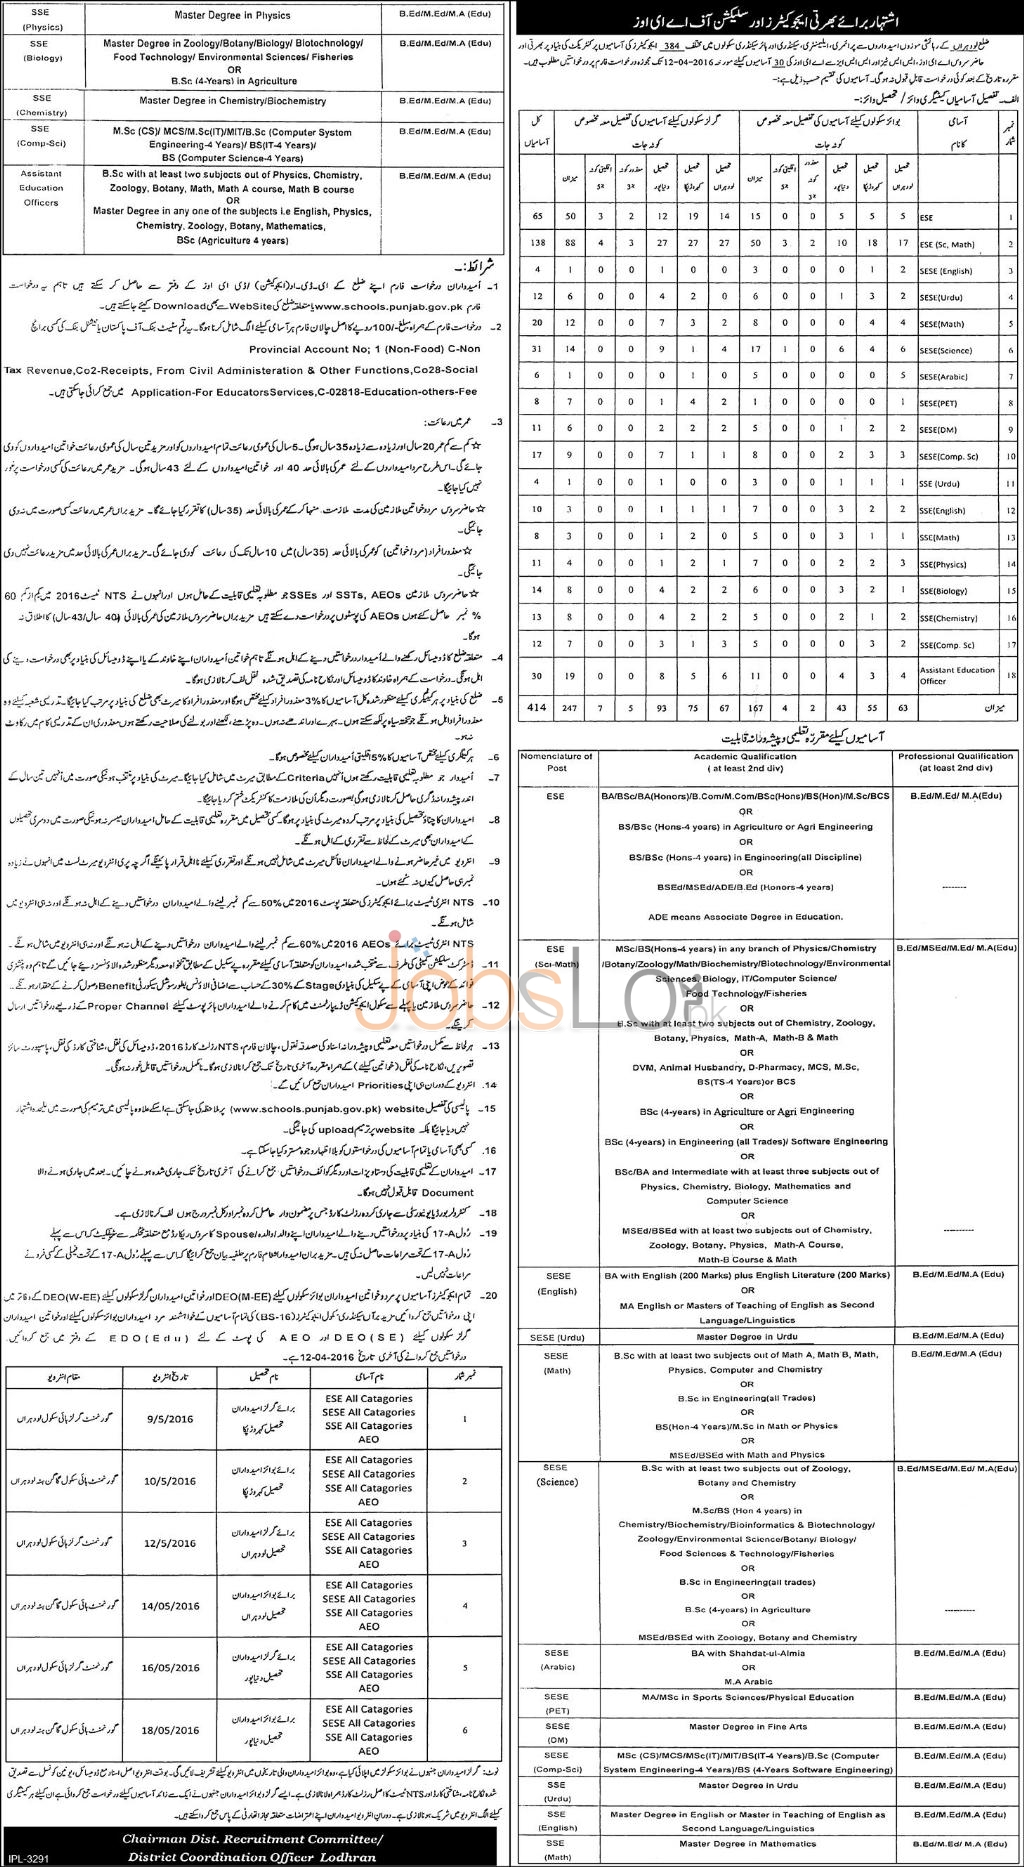 Punjab School Education Department Lodhran Jobs